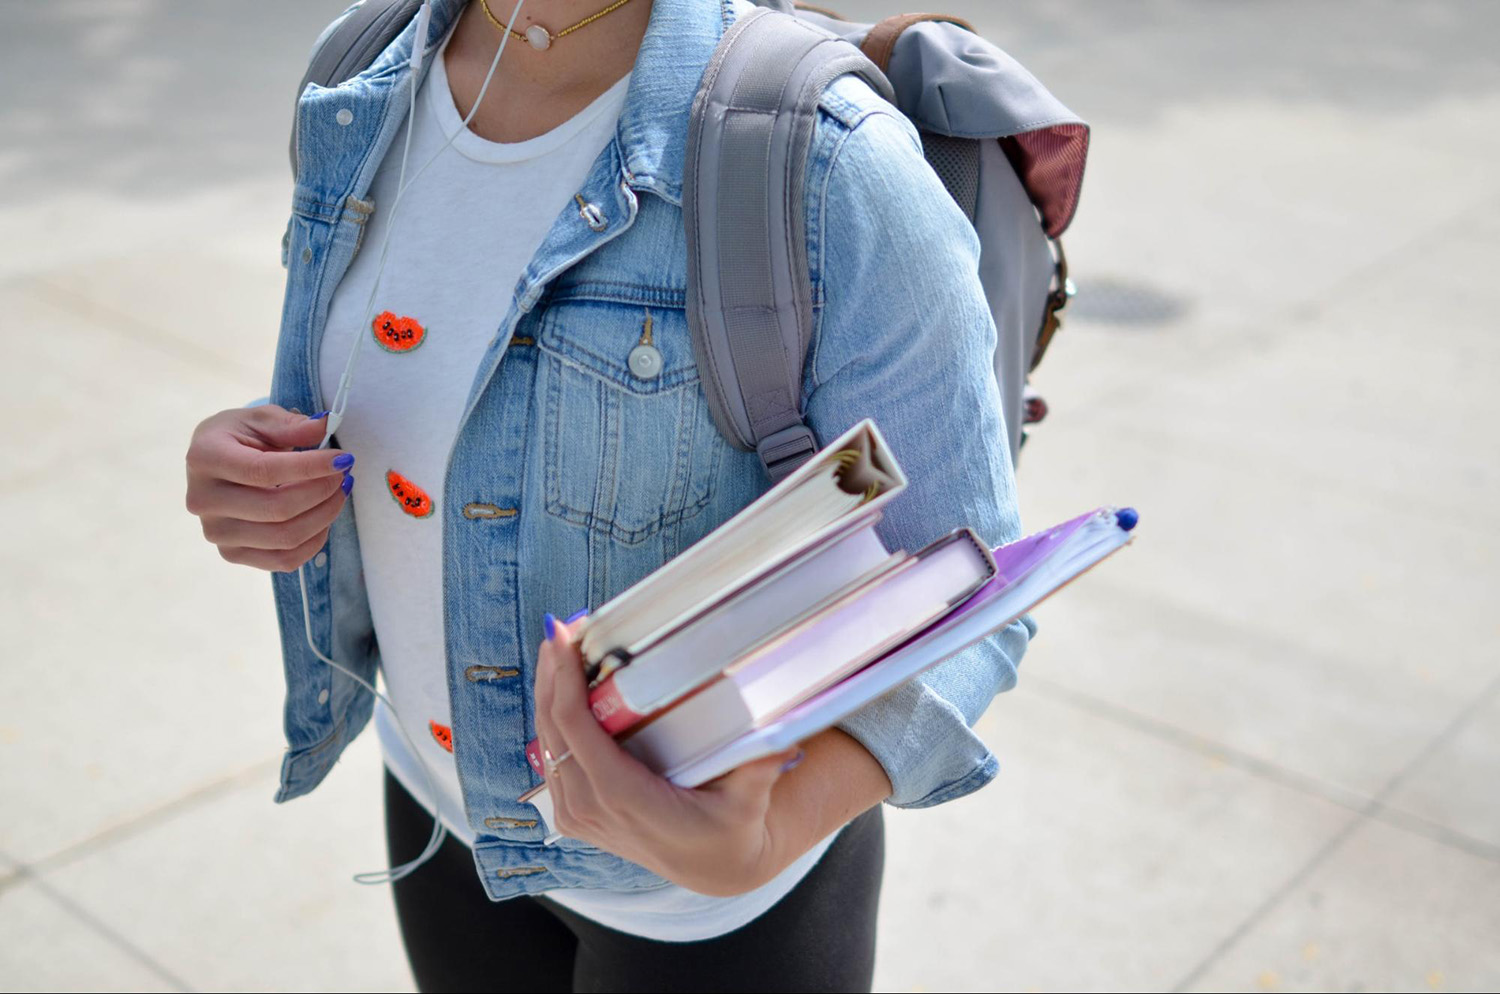 Student standing outdoors holding a backpack and textbooks